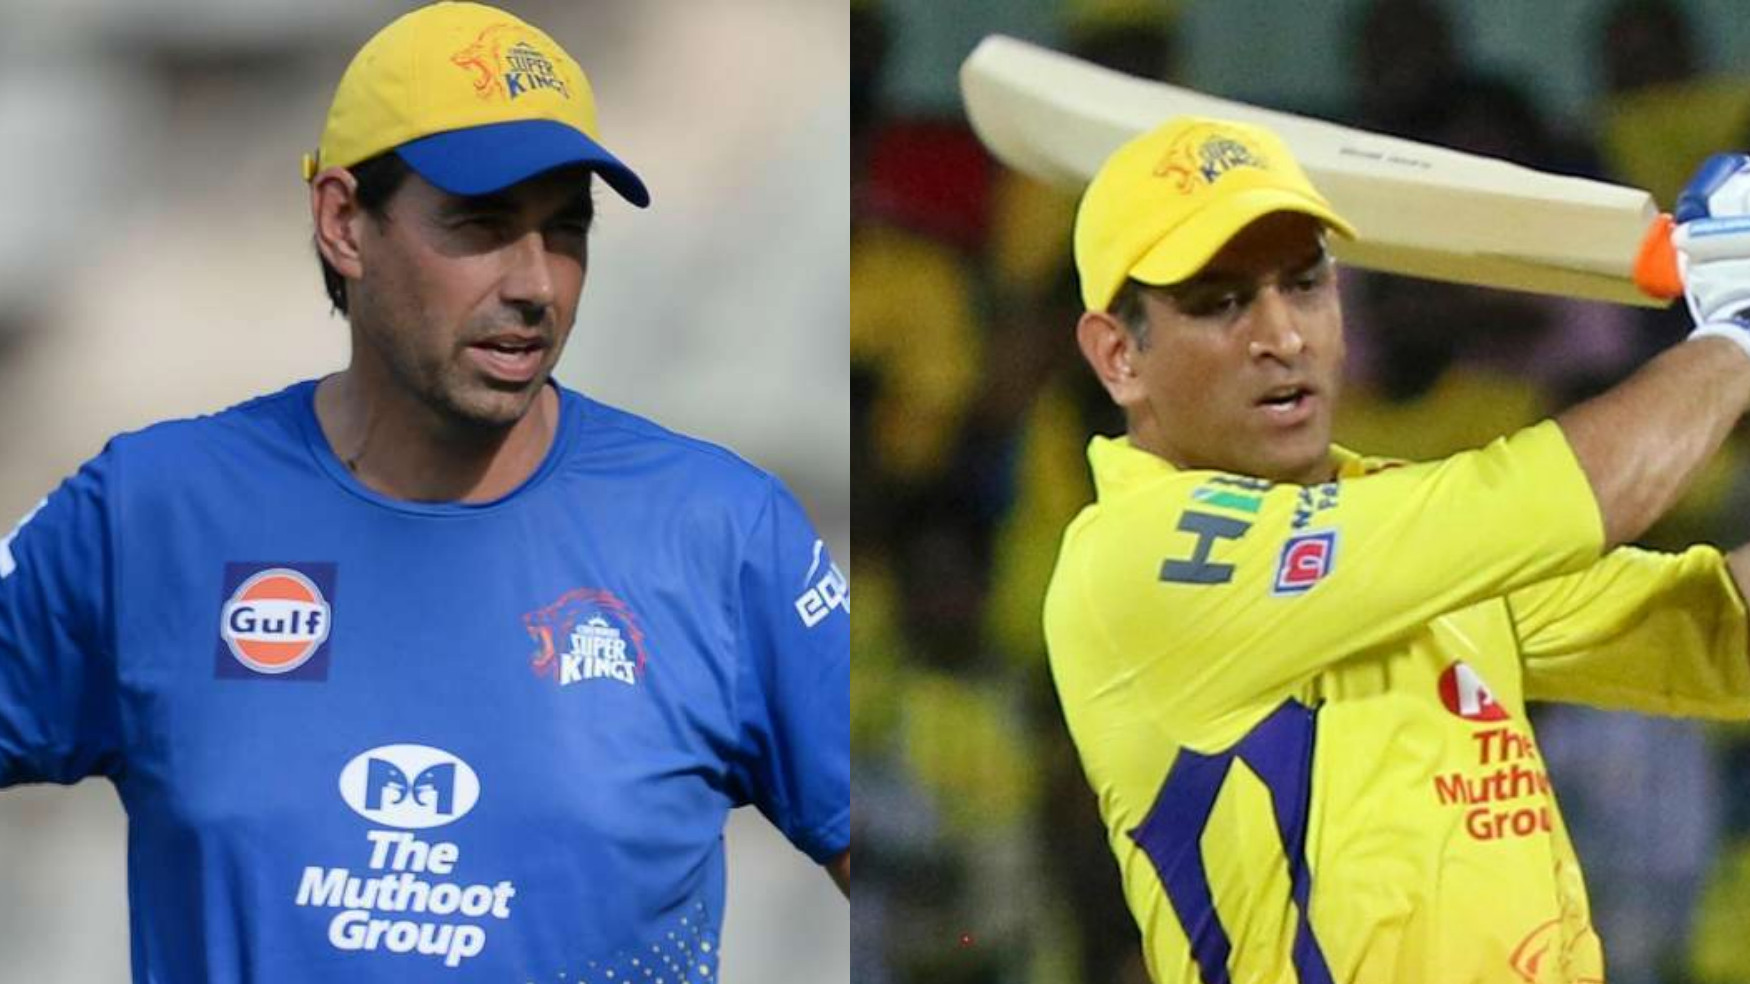 IPL 2019: MS Dhoni's batting position for CSK has been revealed by coach Fleming